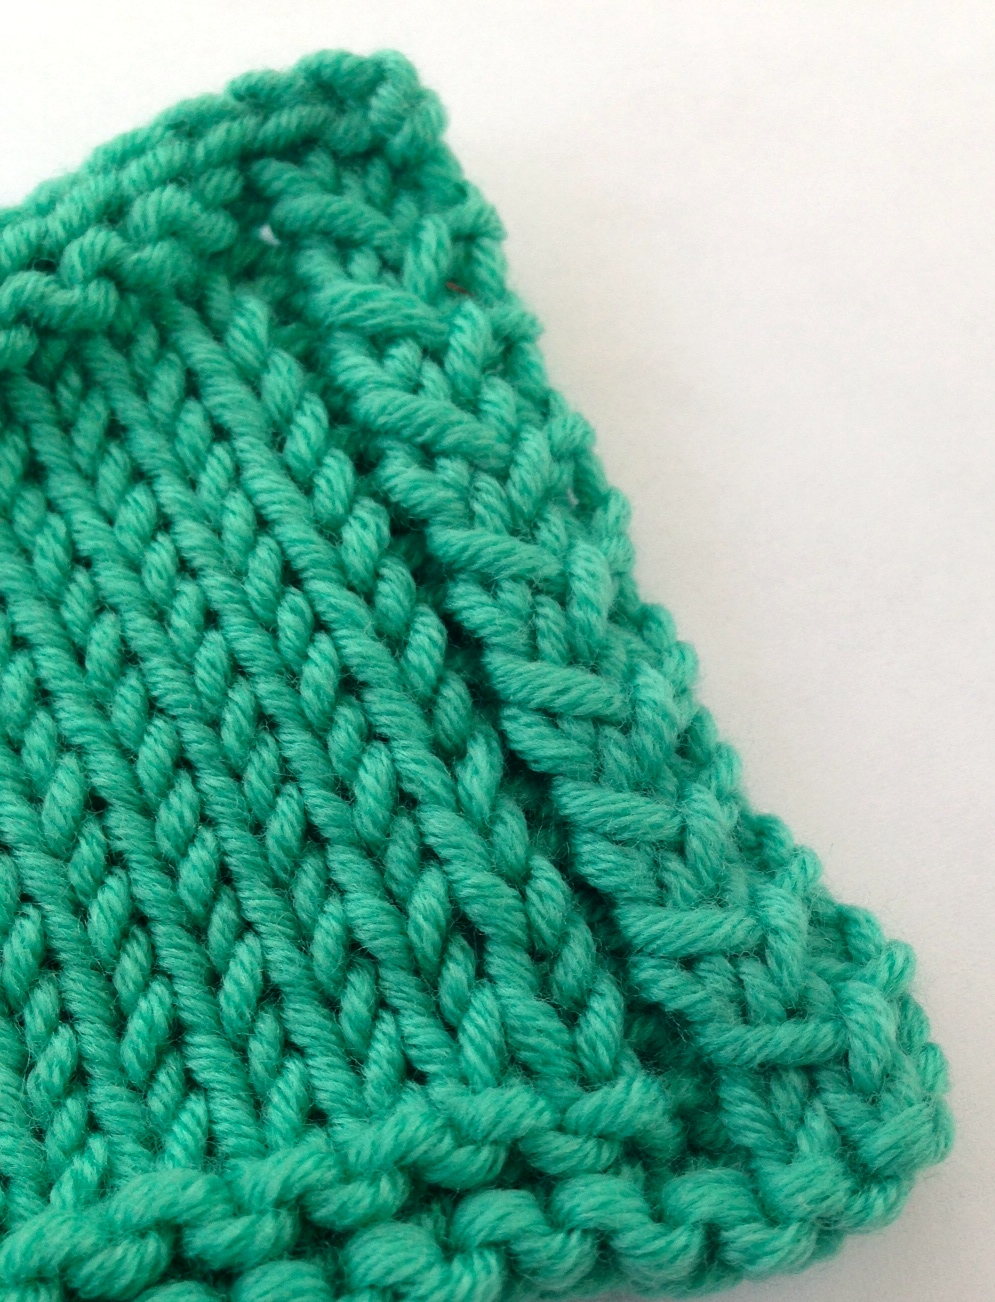 These 4 Stitches Will Instantly Improve Your Knit Edges Knitting Nuances